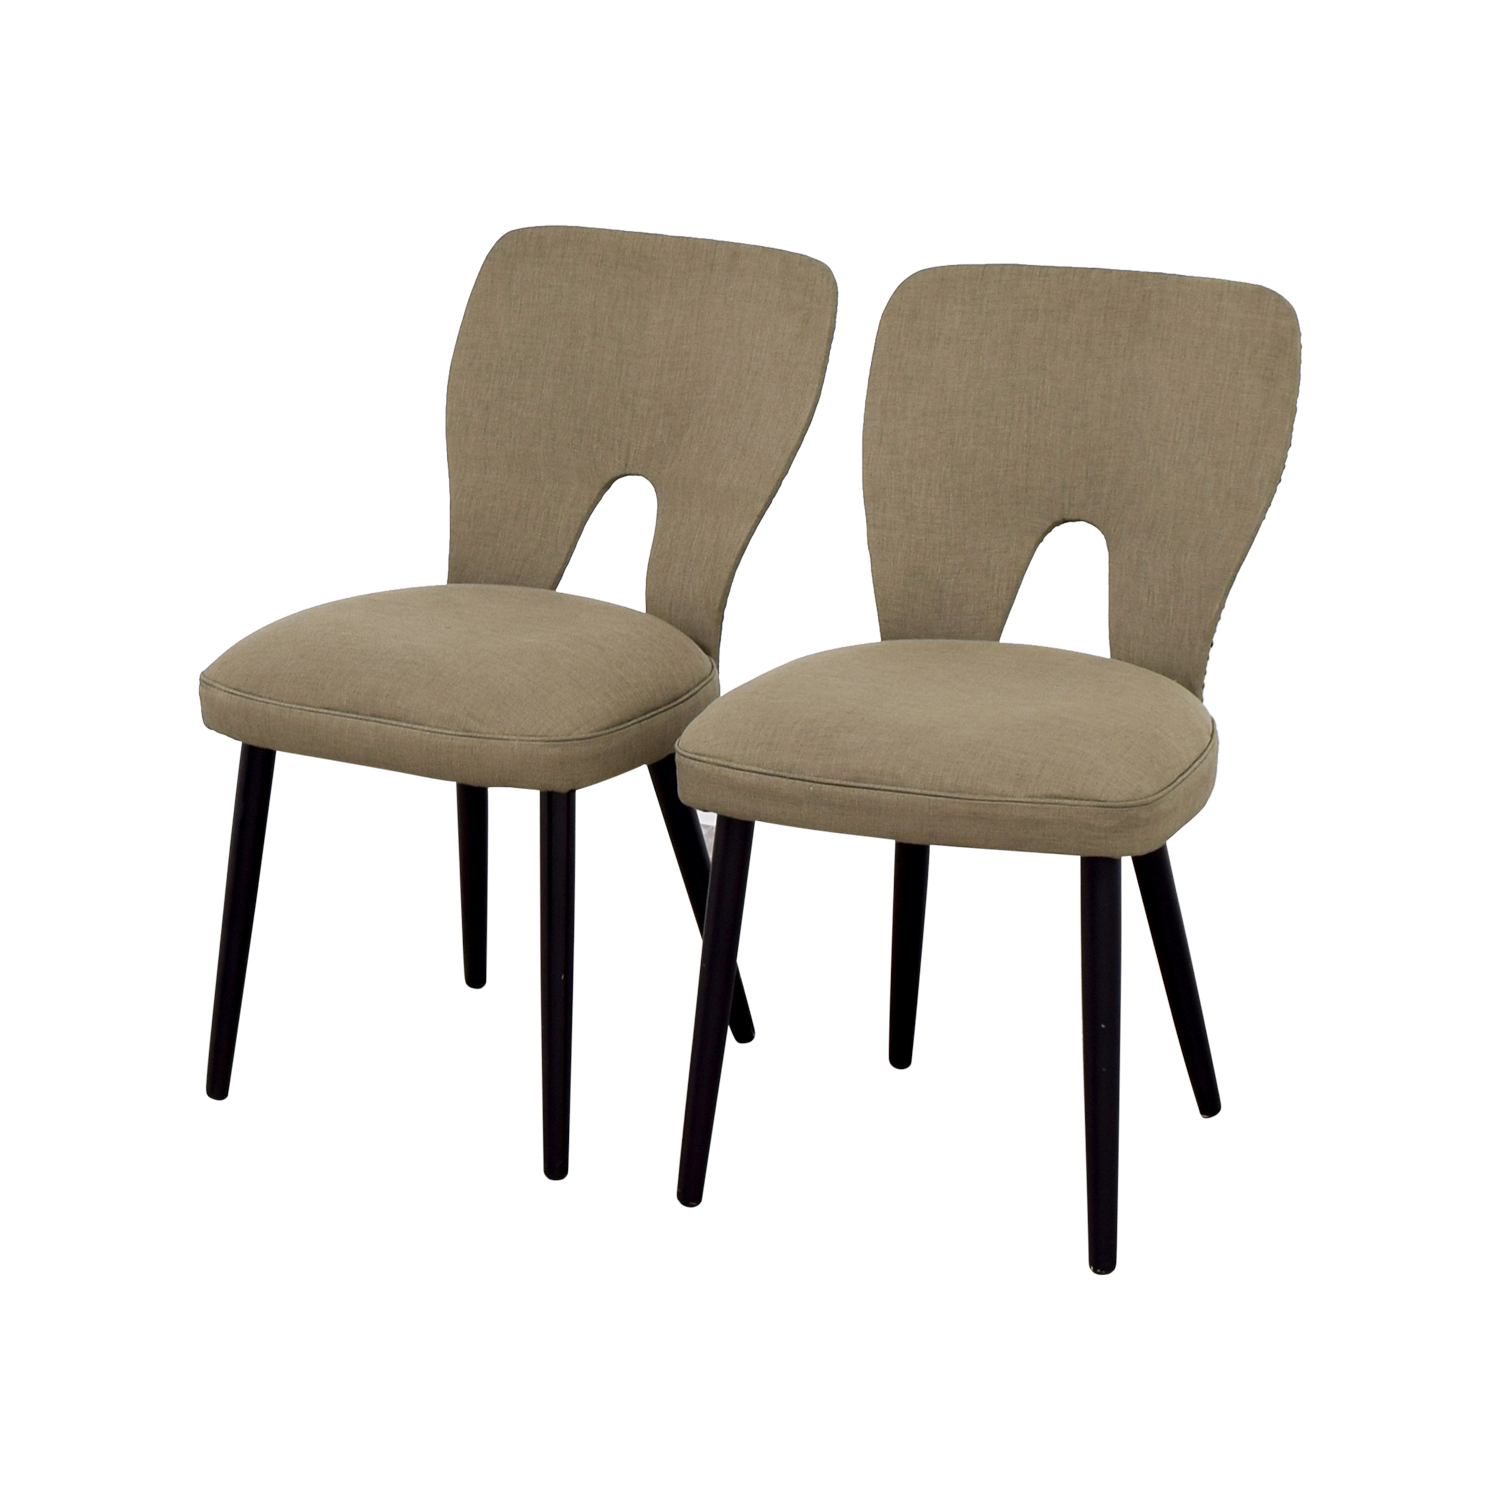 Wayfair Upholstered Beige Dining Chairs Coupon